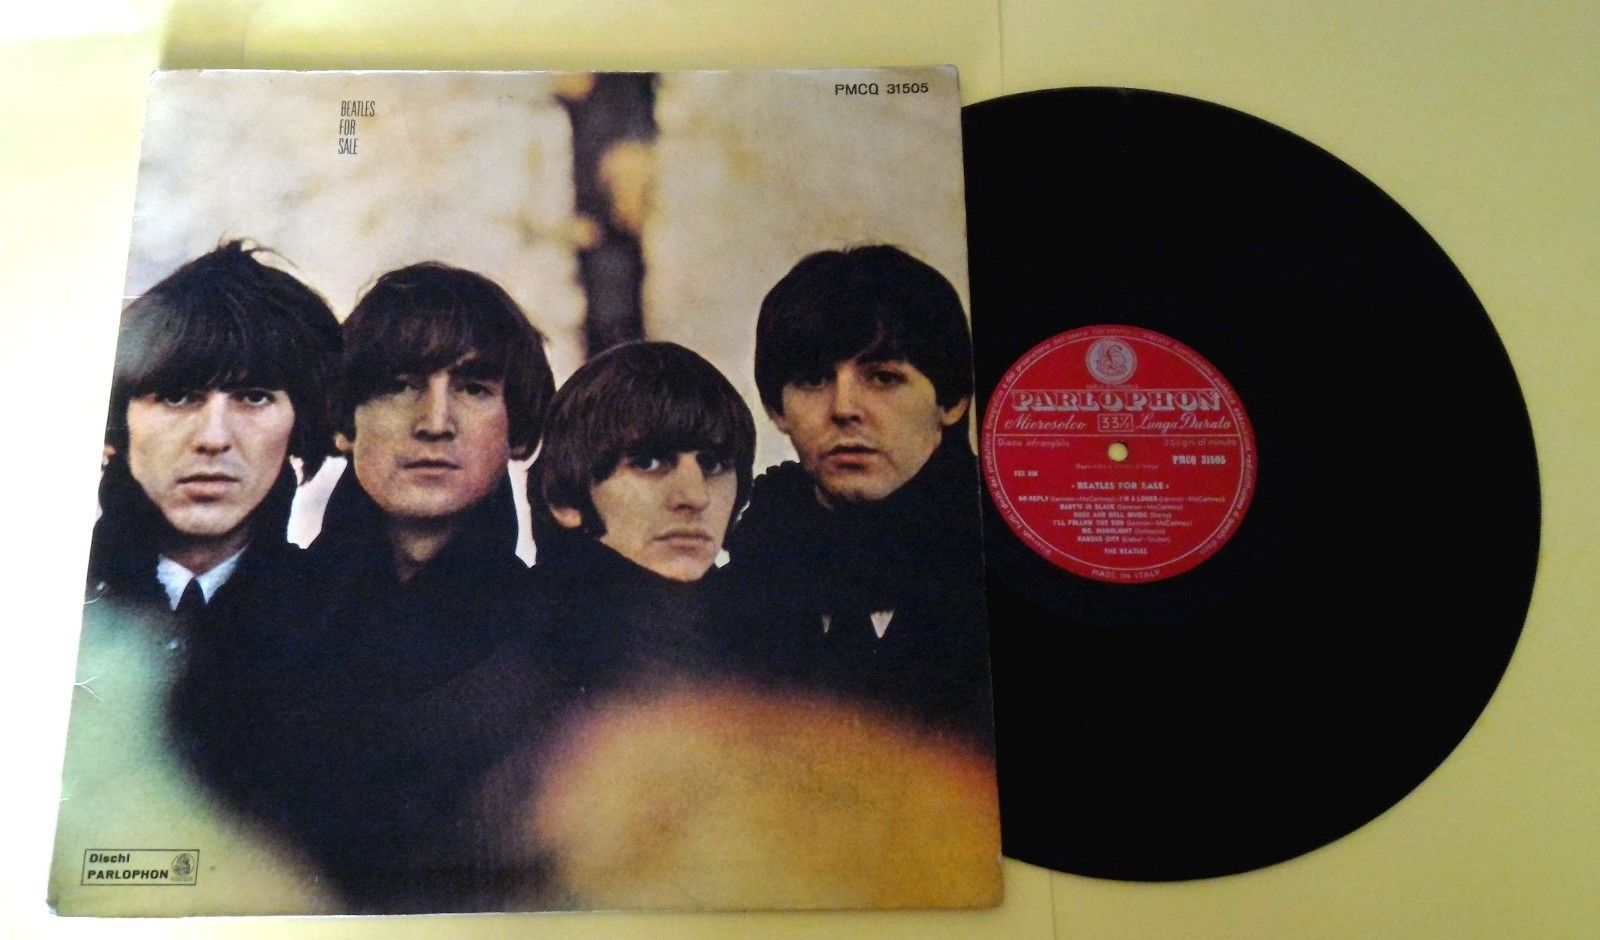 "THE BEATLES (33 RPM-ITALY) PMCQ 31505  ""BEATLES FOR SALE""  VERY FIRST PRESS"